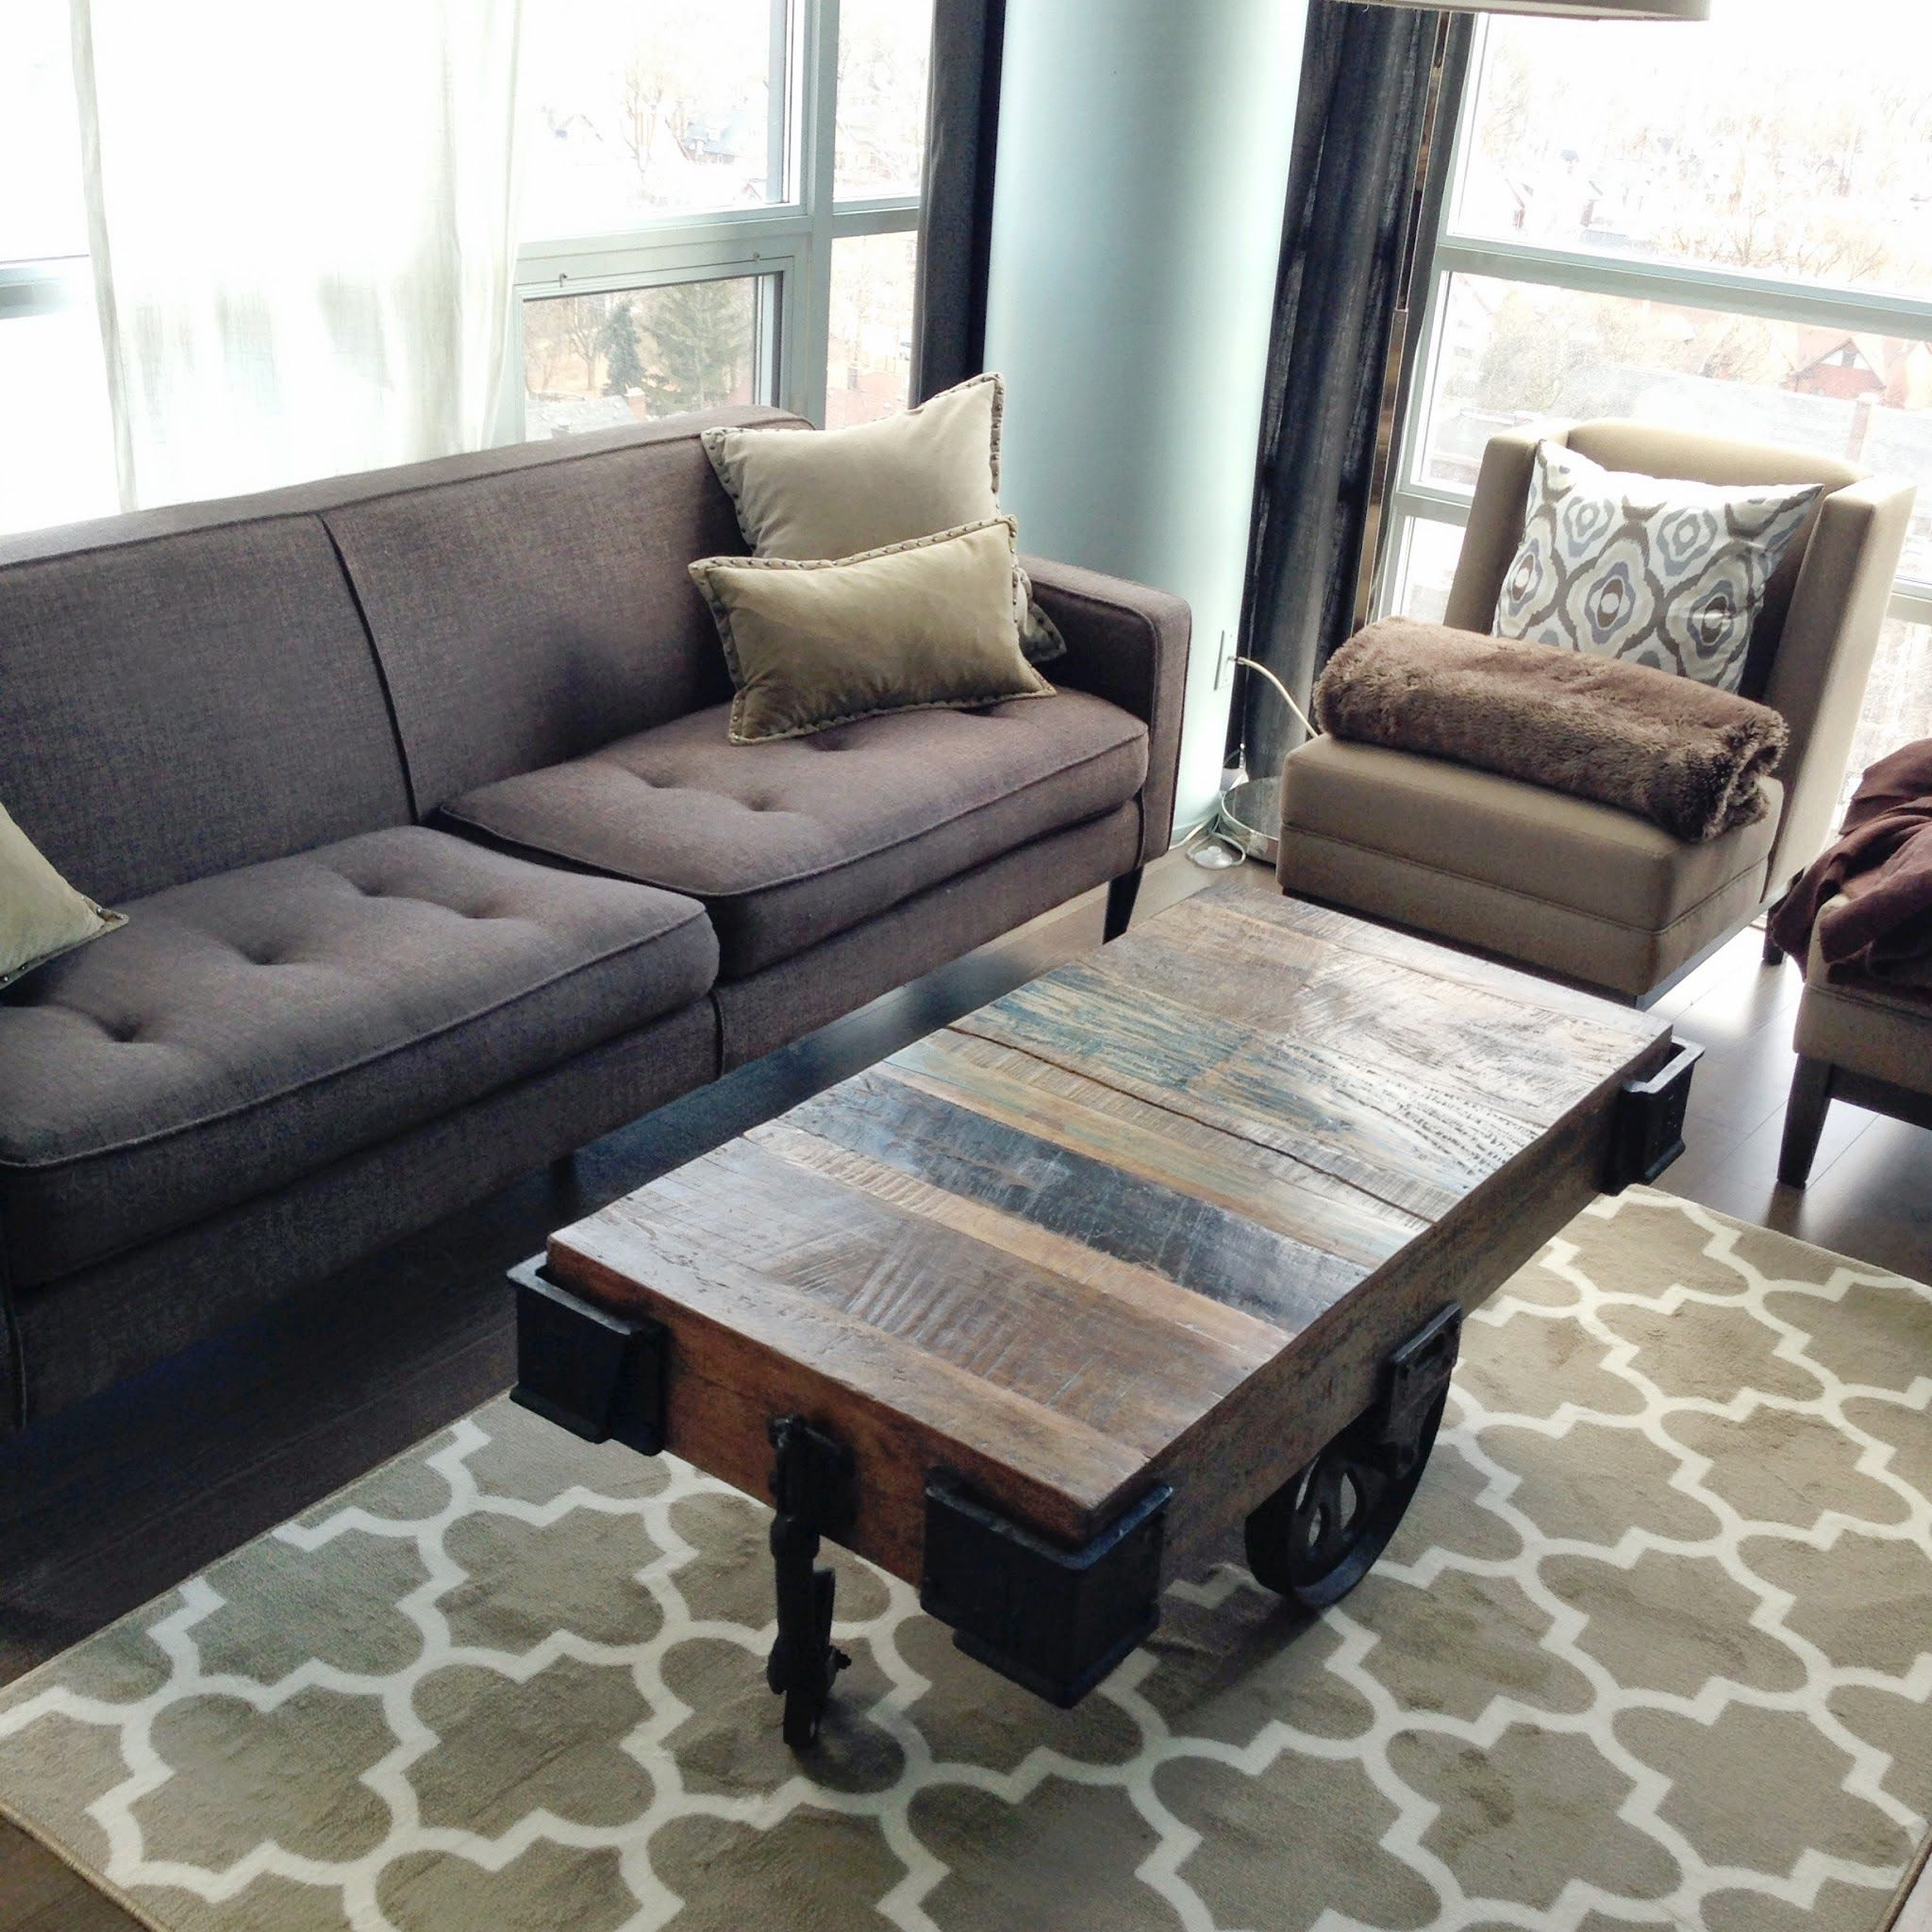 Threshold fretwork rug living room pictures